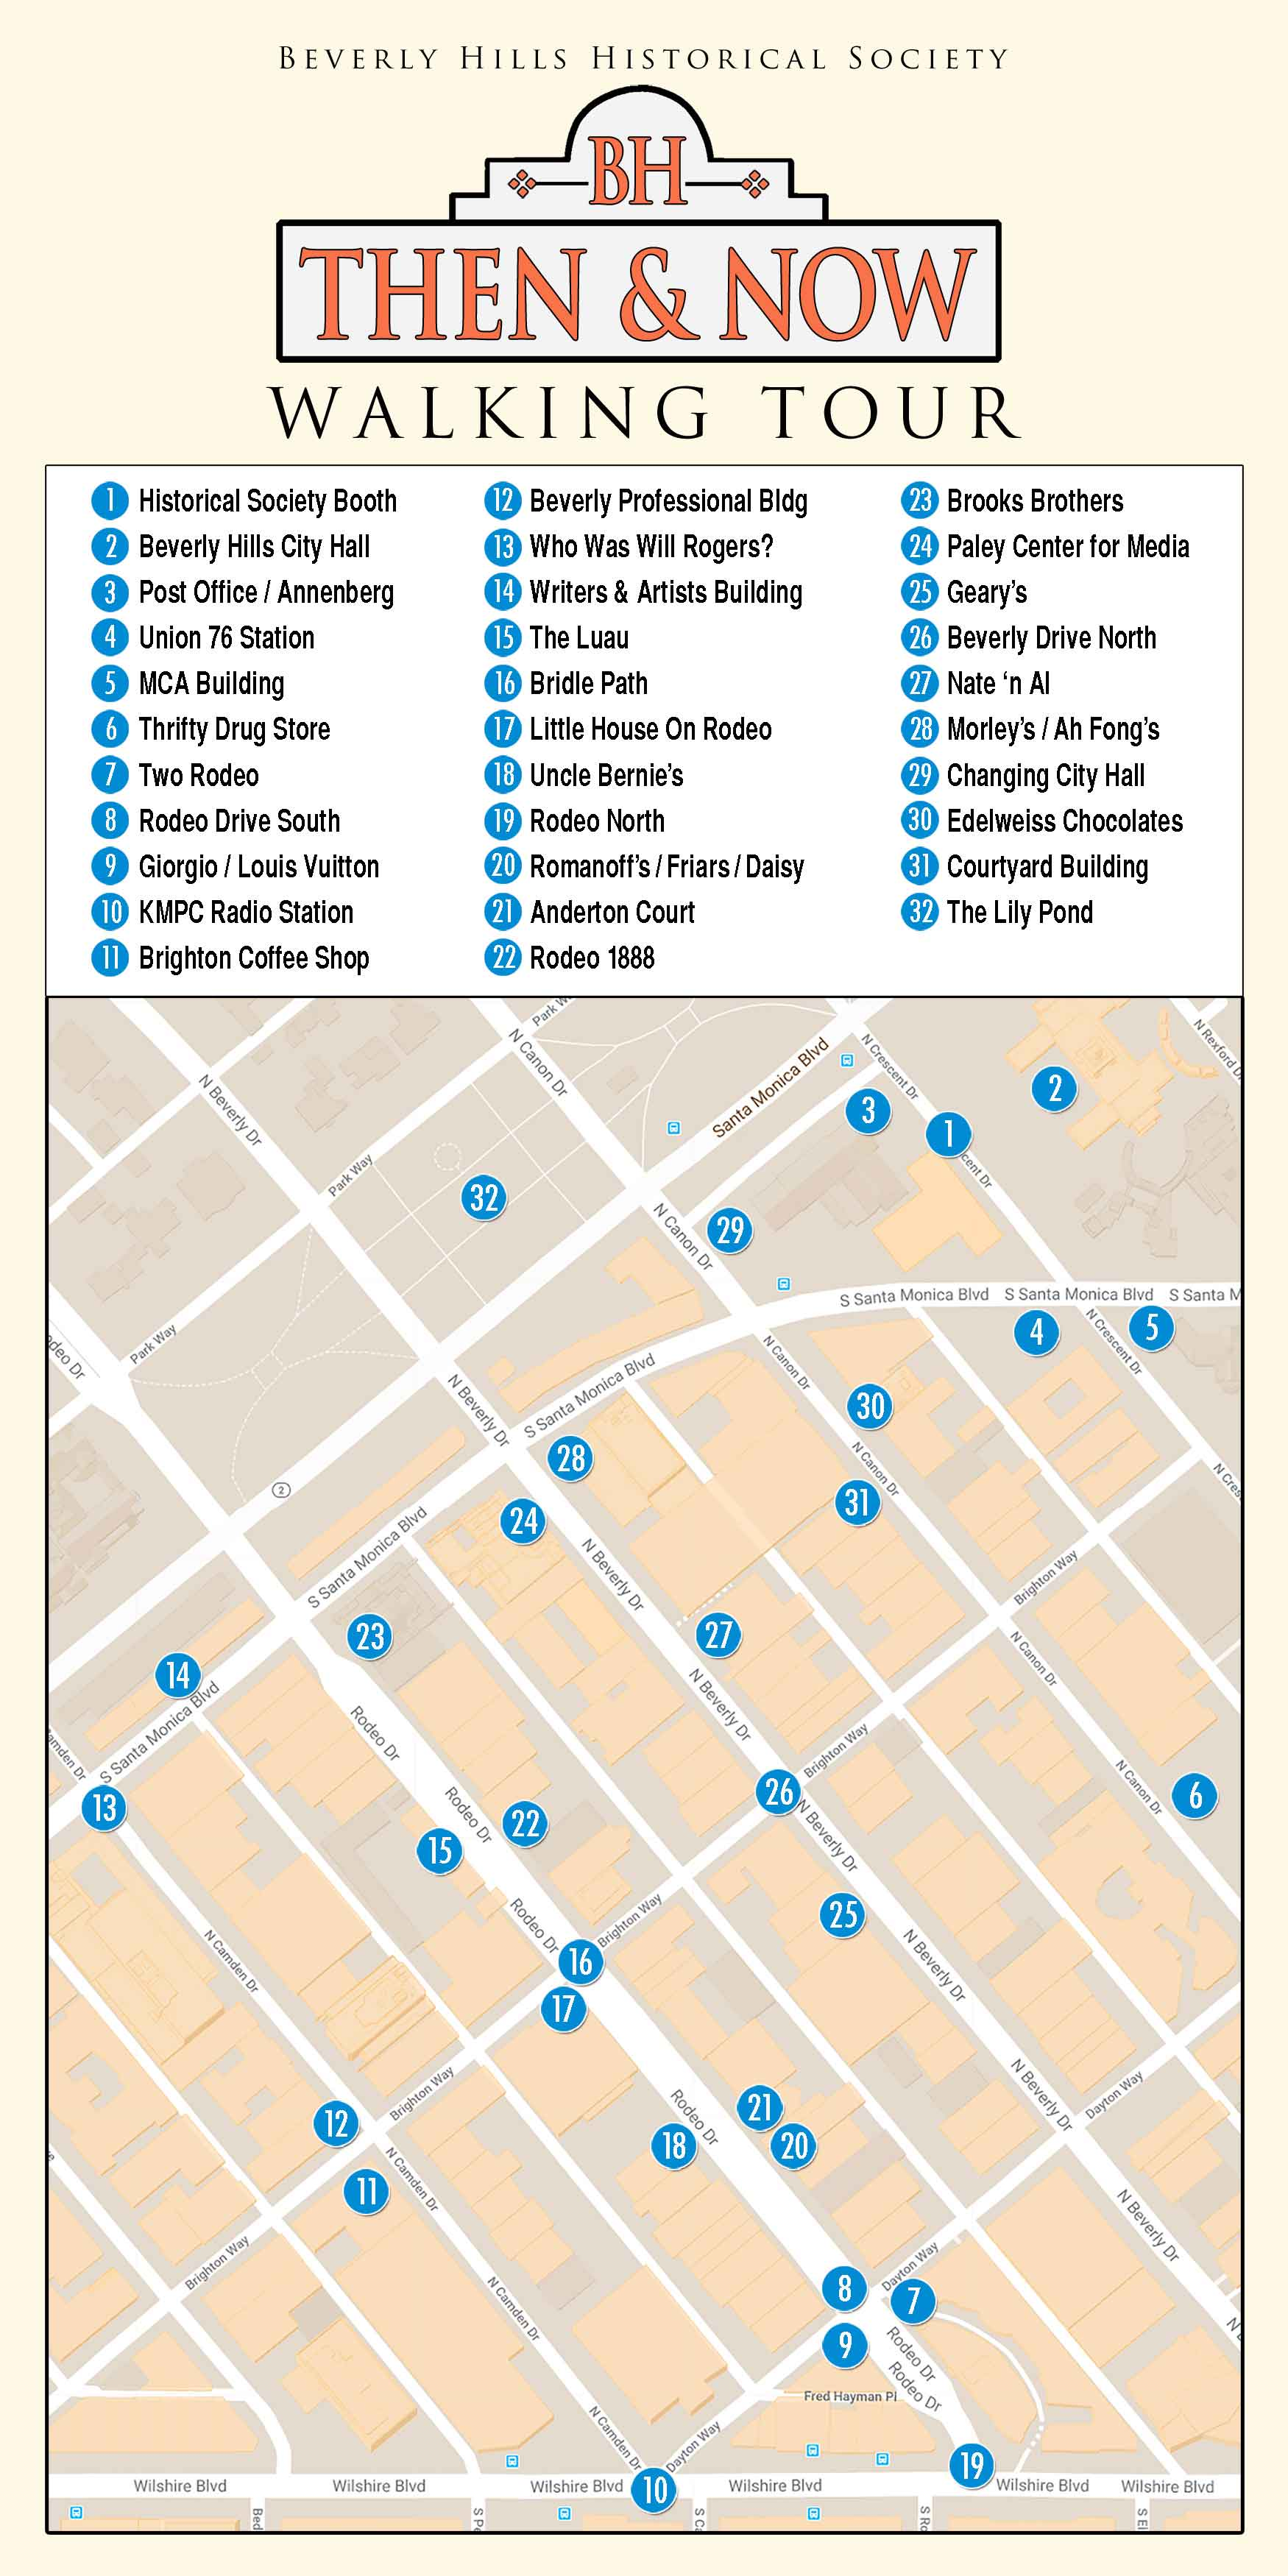 ThenNow_WalkingTour_Map_mobile_small_v02.jpg